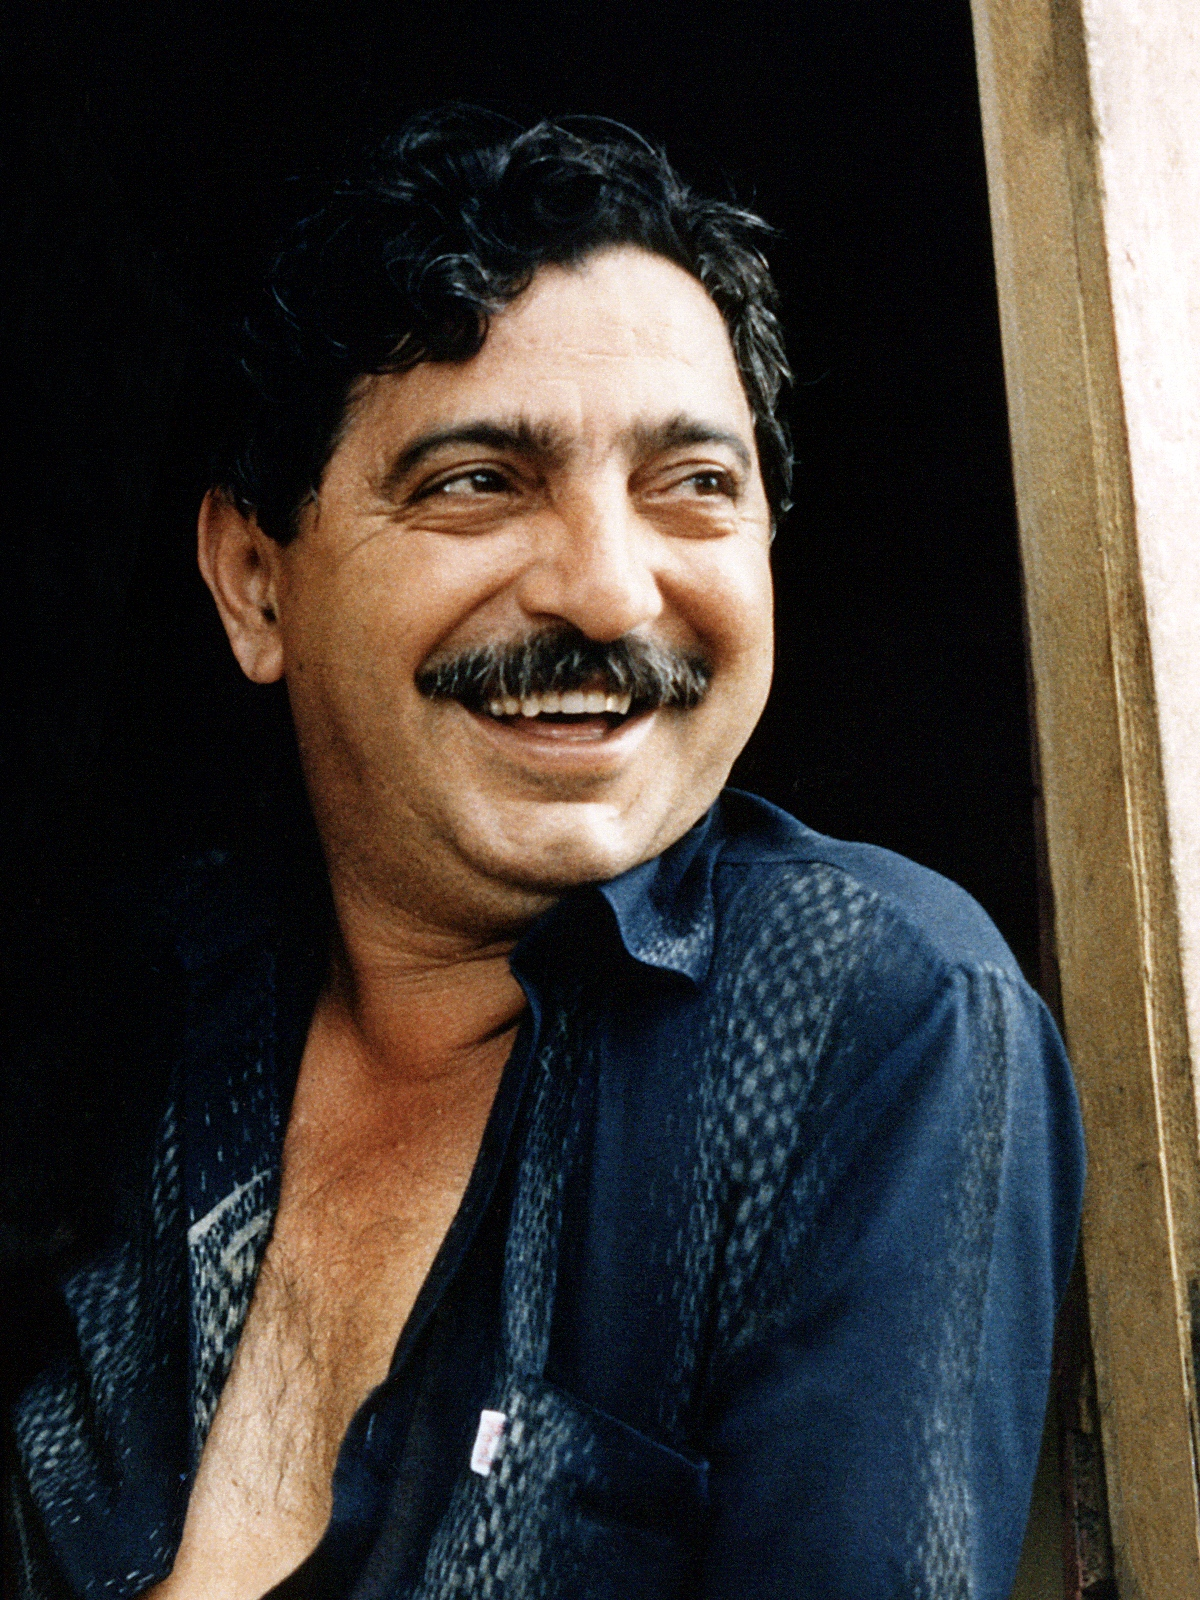 who killed chico mendes essay Welcome to ascap - the world leader in performance royalties, advocacy and service for songwriters, composers and music publishers.